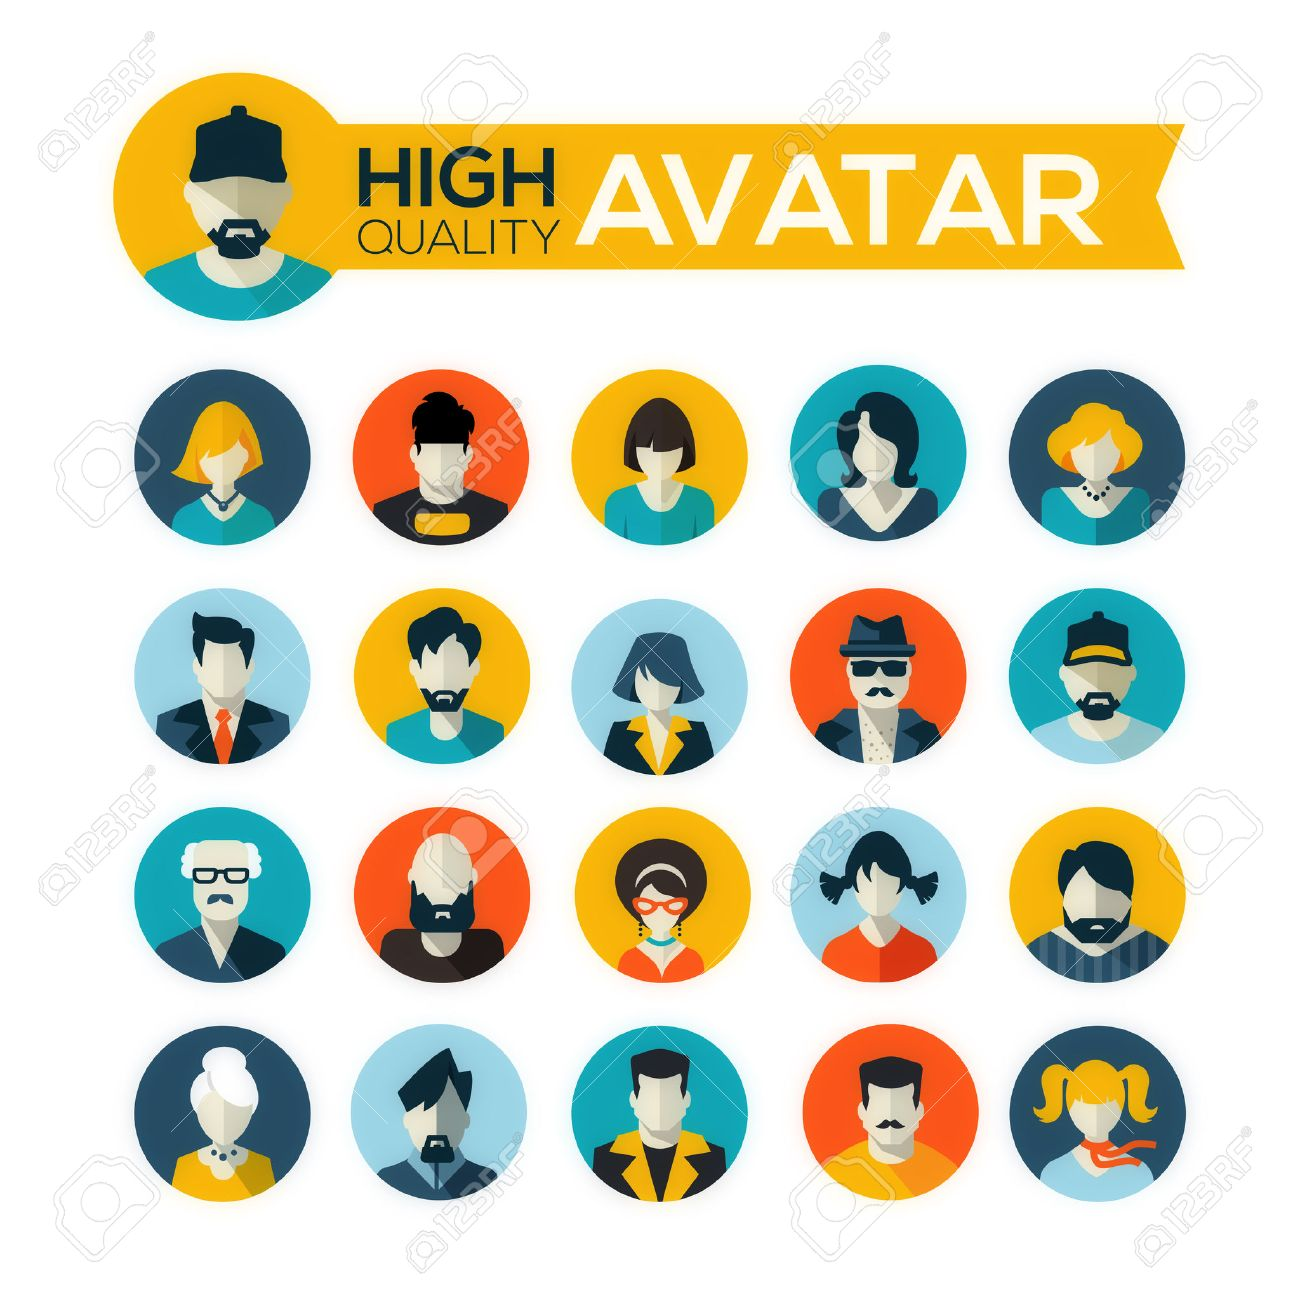 set of 20 flat design avatars icons, for use in mobile applications, website profile picture or in socil networks - 29949347